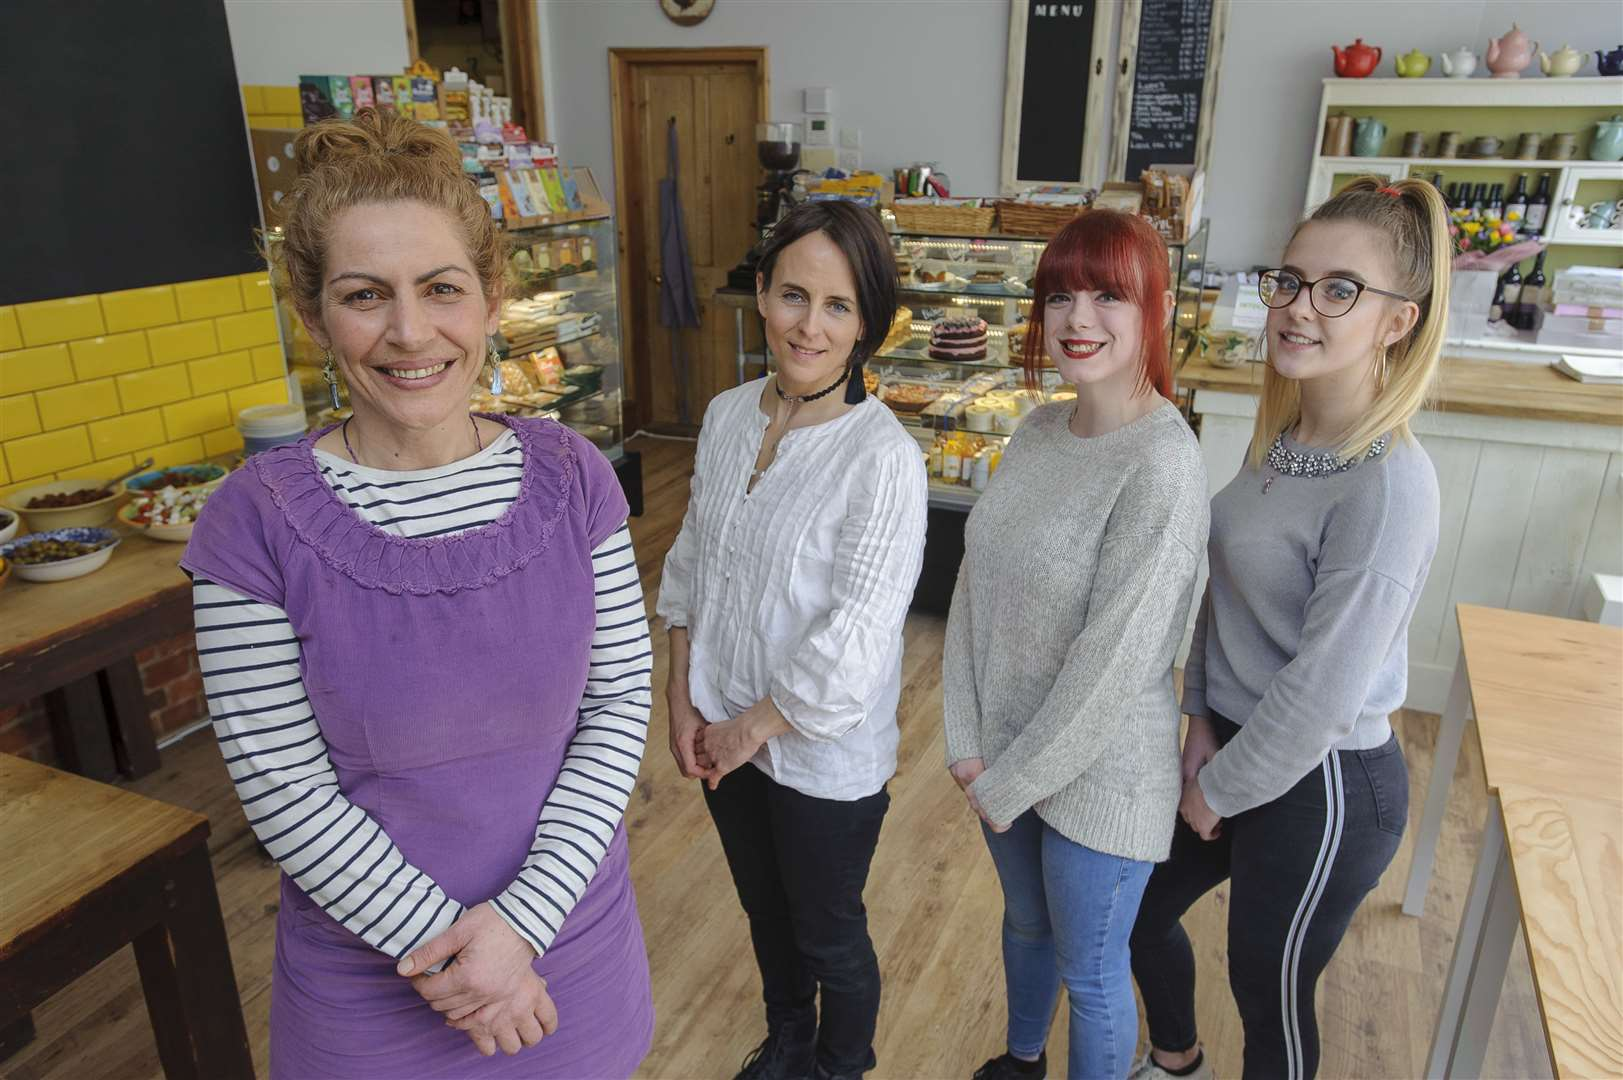 Erasmia Kyriakou, Jessica Livsey, Elly Armistead and Cara Yaxley of The Hungry Cat Café in Harleston. Picture by Mark Bullimore.